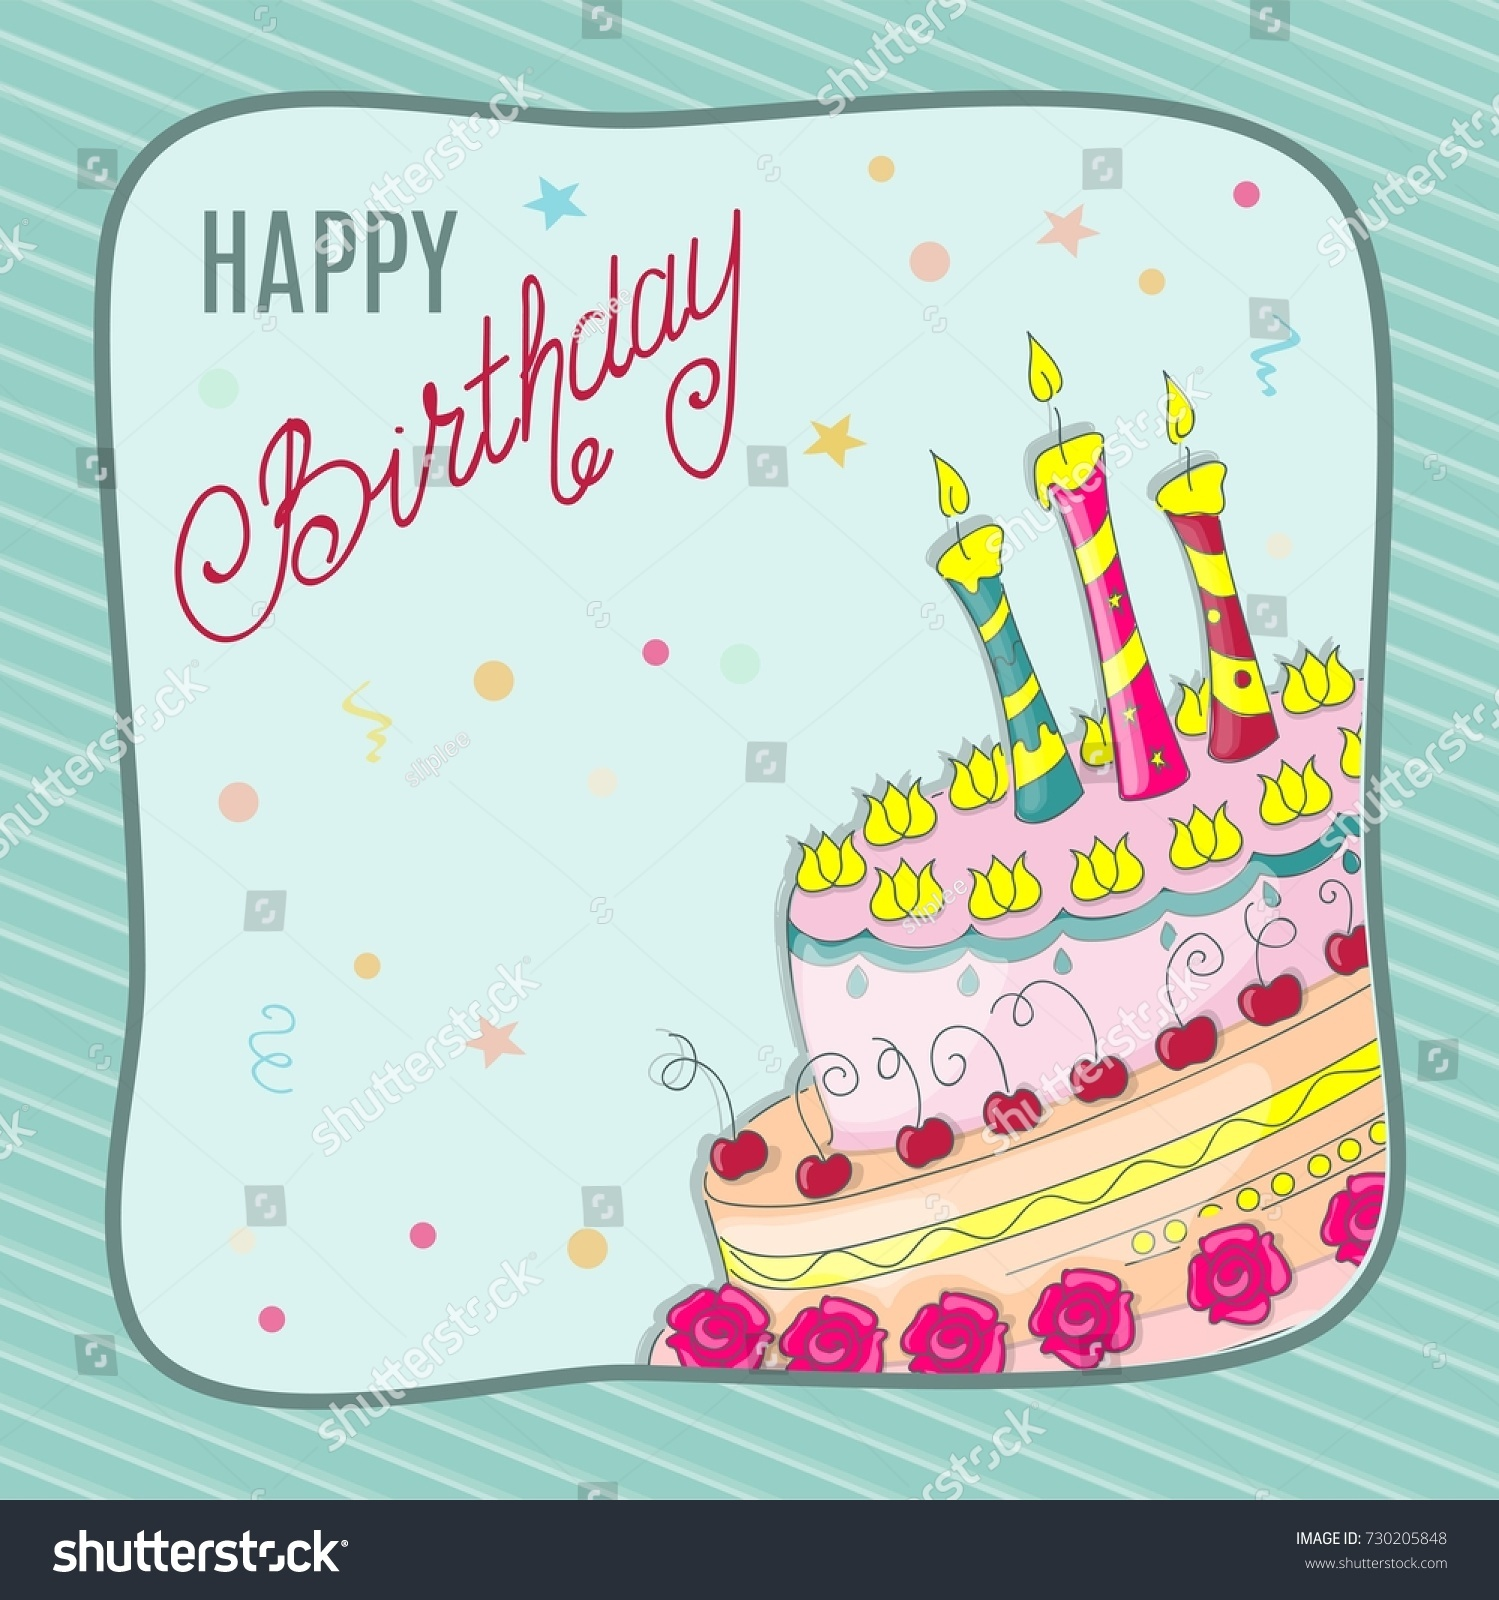 Colorful birthday card part doodle cake stock vector 730205848 colorful birthday card with part of the doodle cake tier three candles handwritten inscription kristyandbryce Image collections